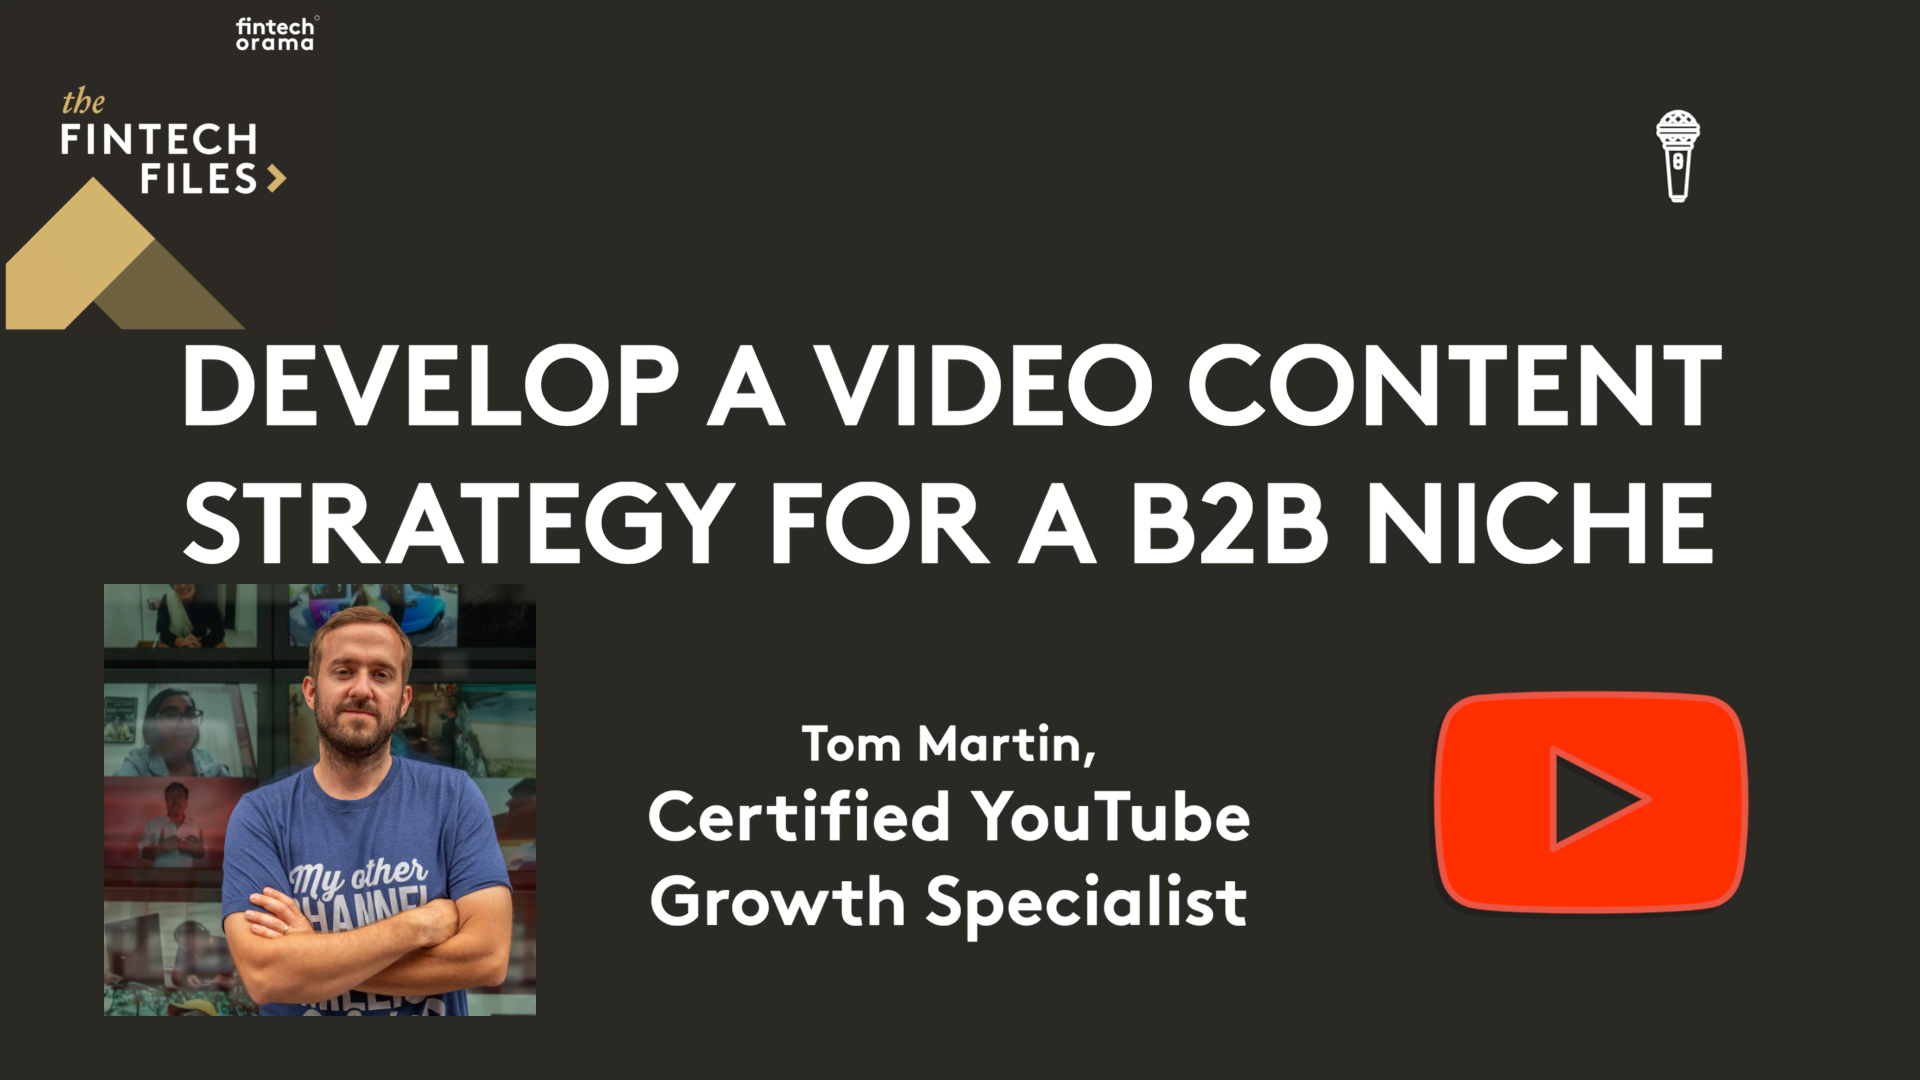 How to Develop a Video Content Strategy for a B2B Niche – Tom Martin,  Certified YouTube Growth Specialist